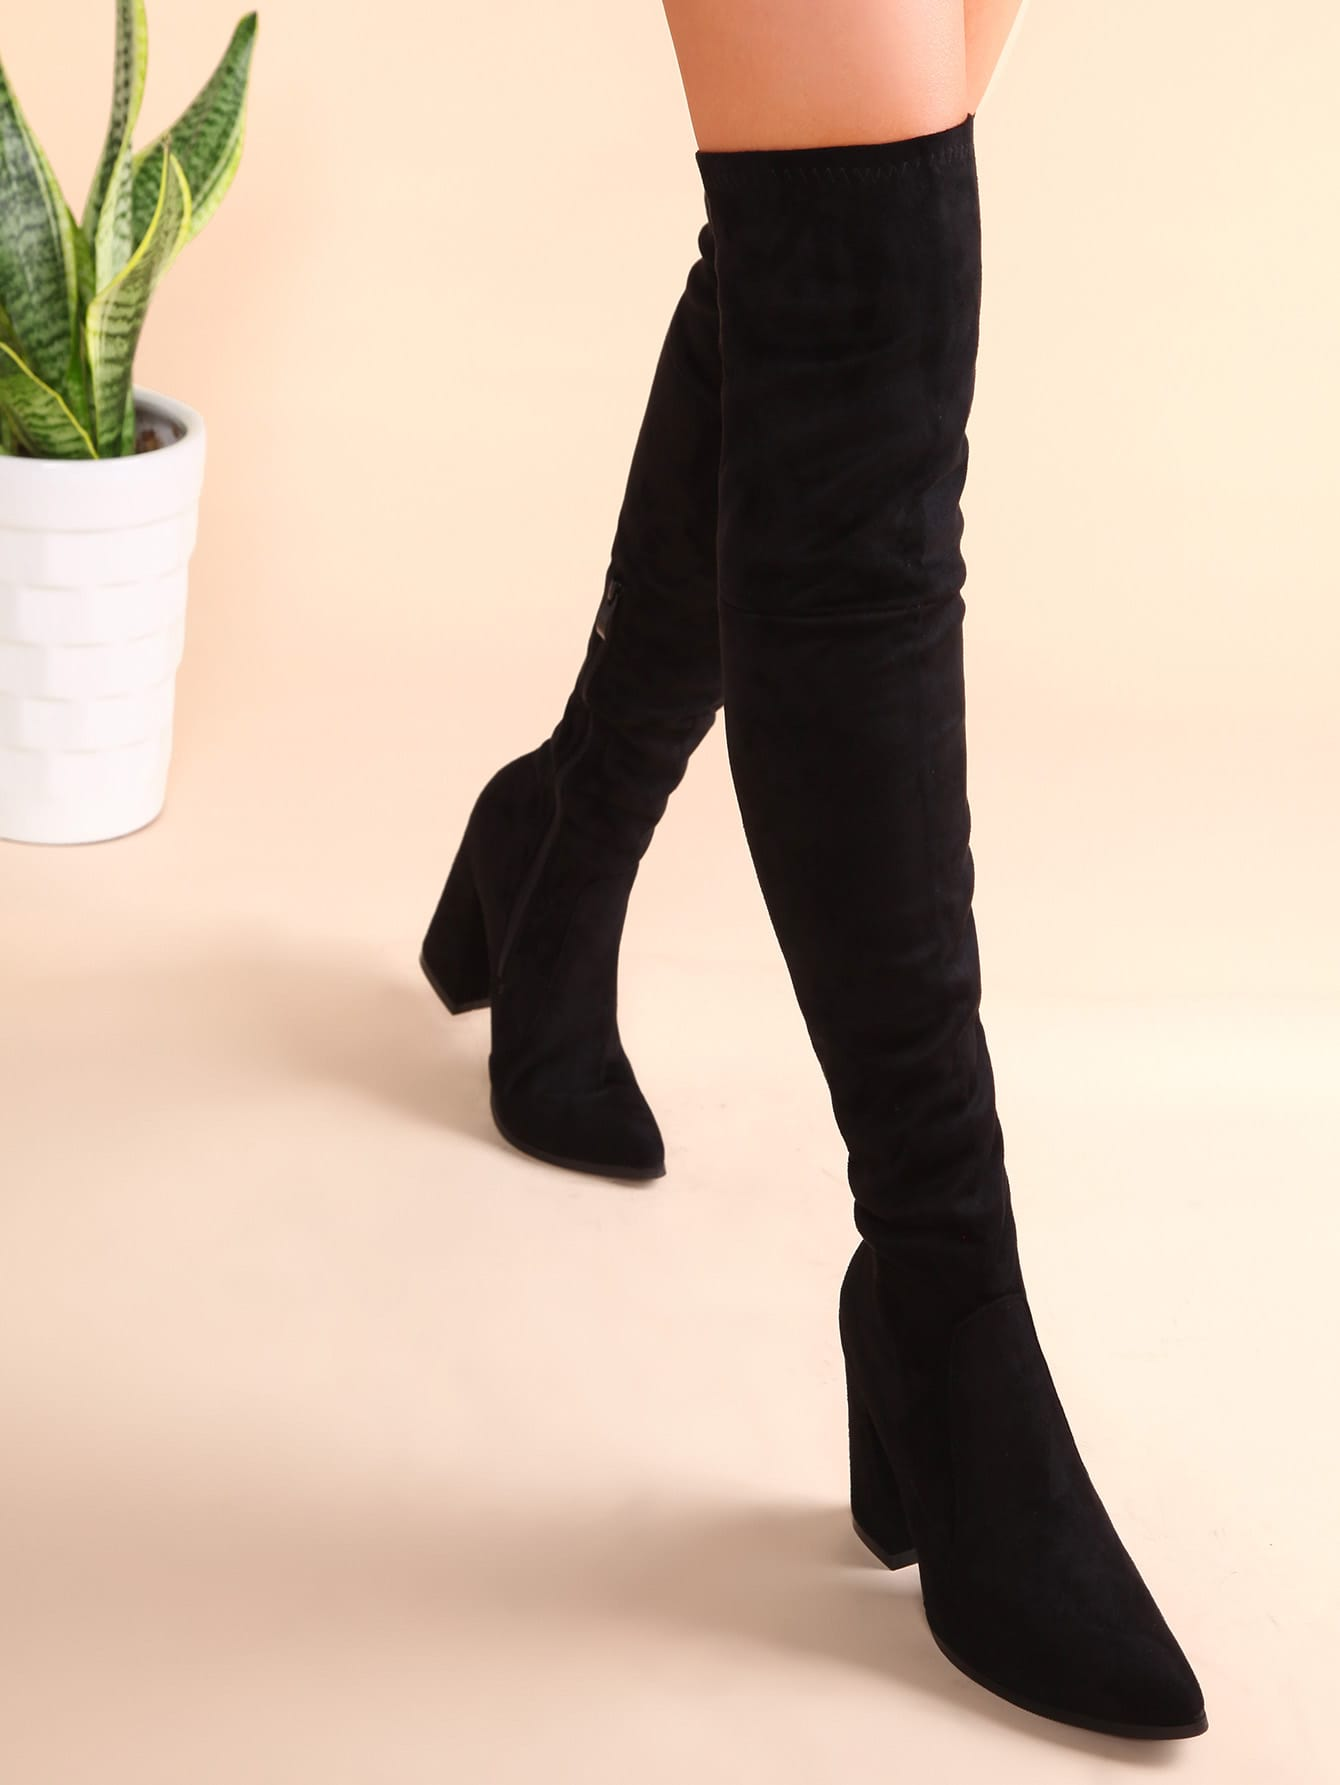 Black Point Toe Thigh High Chunky Heel Suede Boots shoes161109813